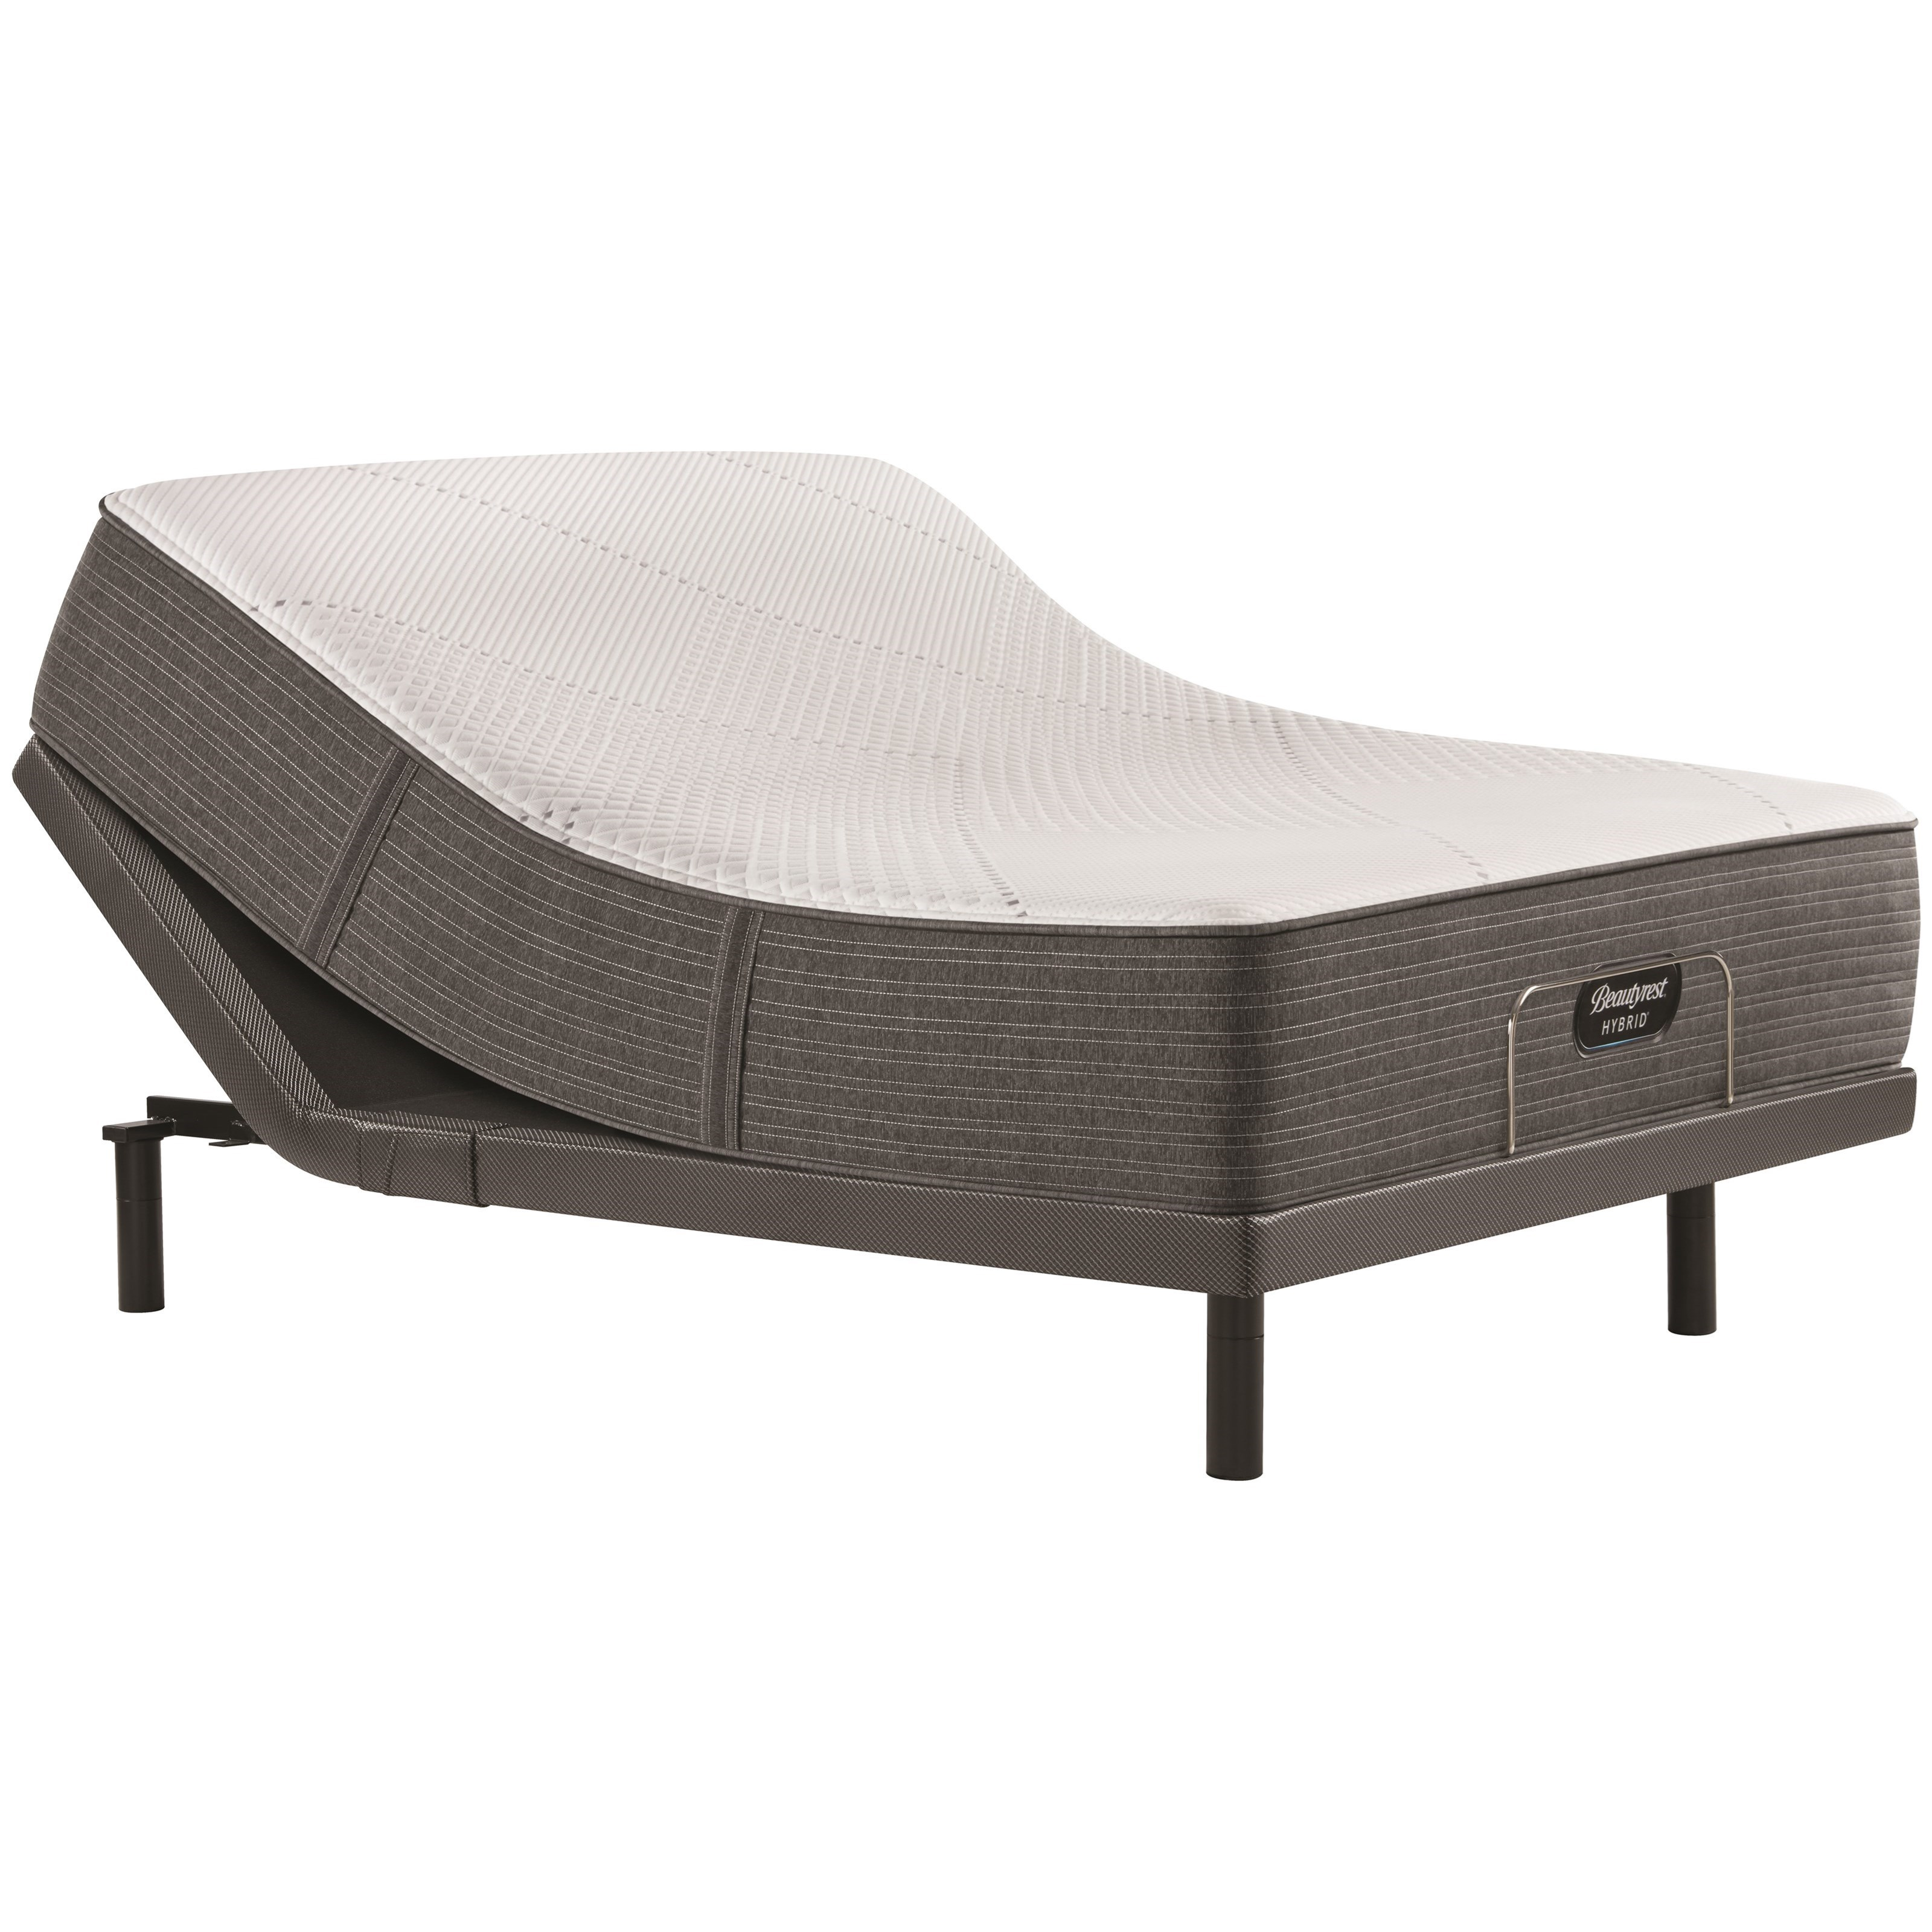 "BRX1000-IP Plush King 13 1/2"" Hybrid Adjustable Set by Beautyrest at Michael Alan Furniture & Design"